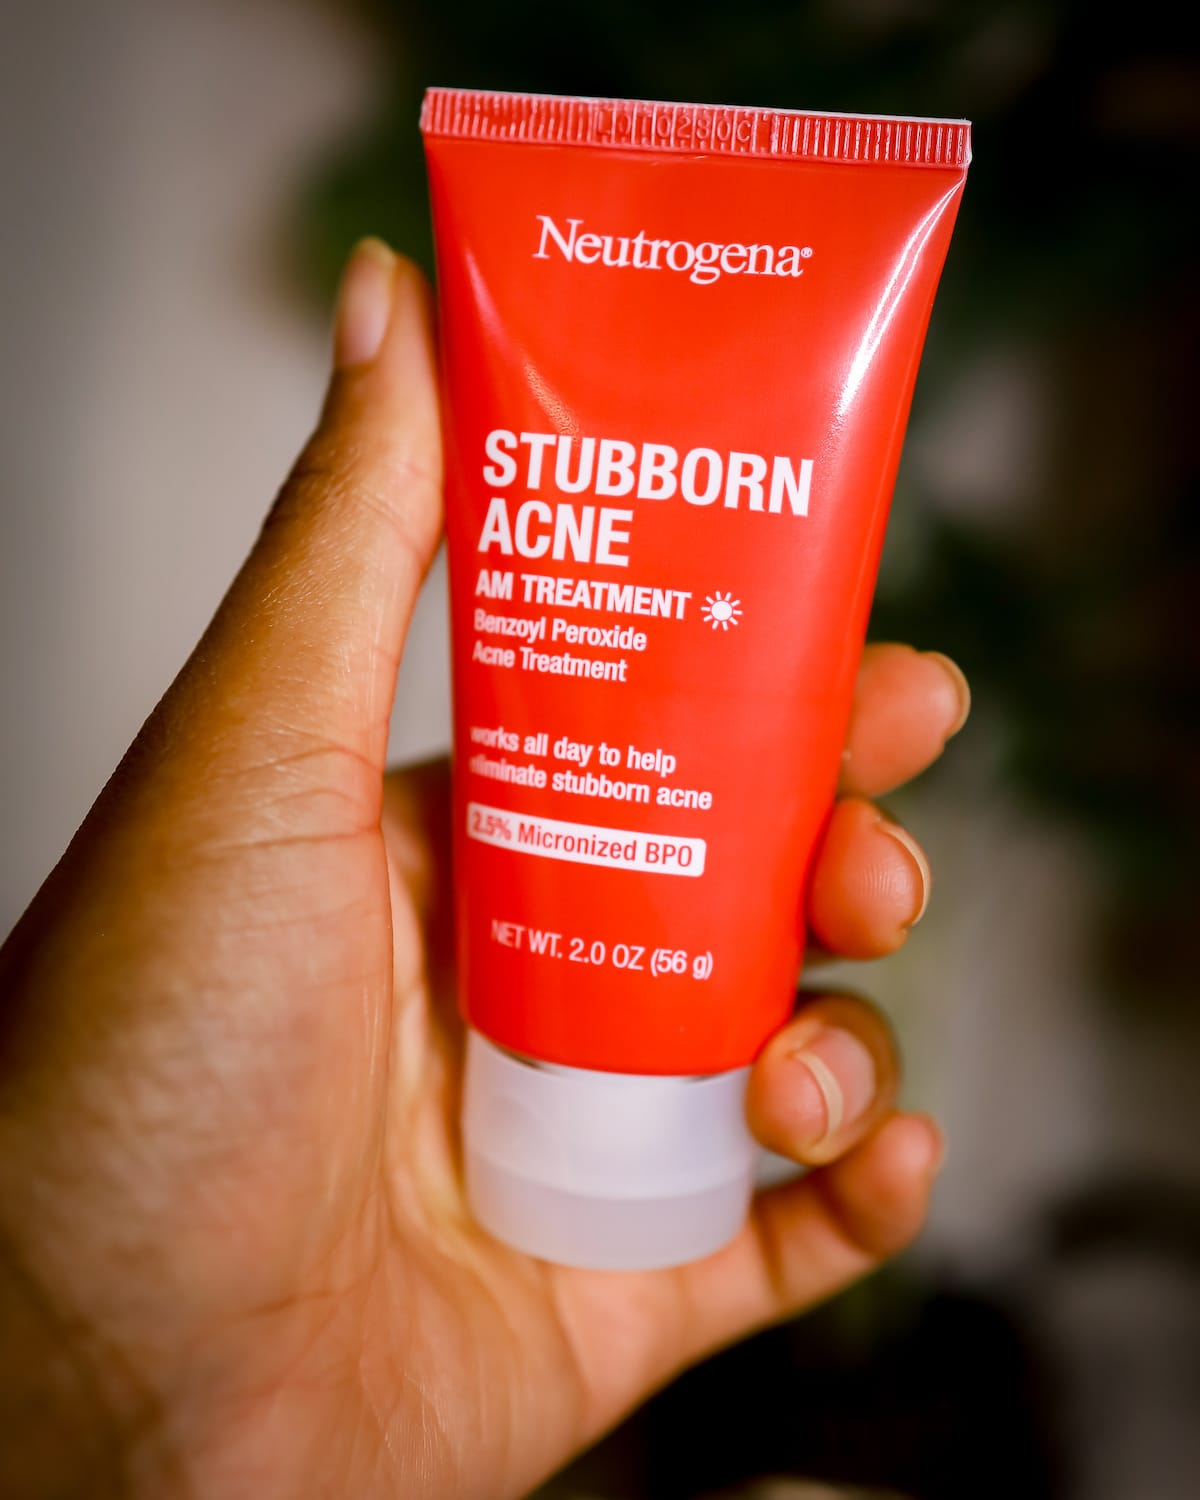 neutrogena stubborn acne AM treatment review